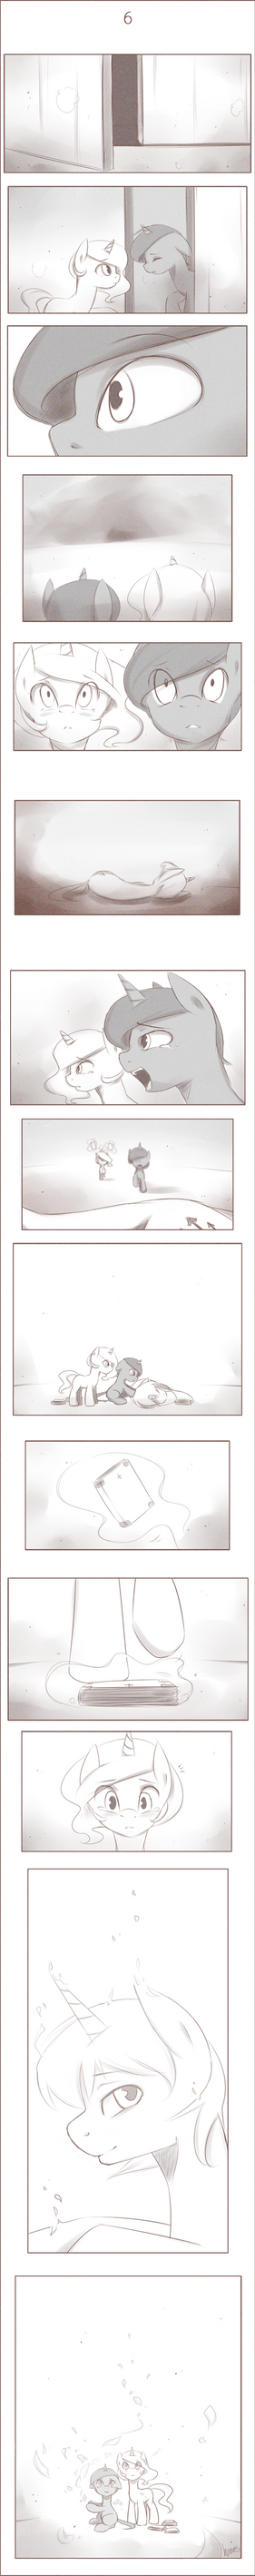 A Beautiful Sonnet - page 6 by derpiihooves